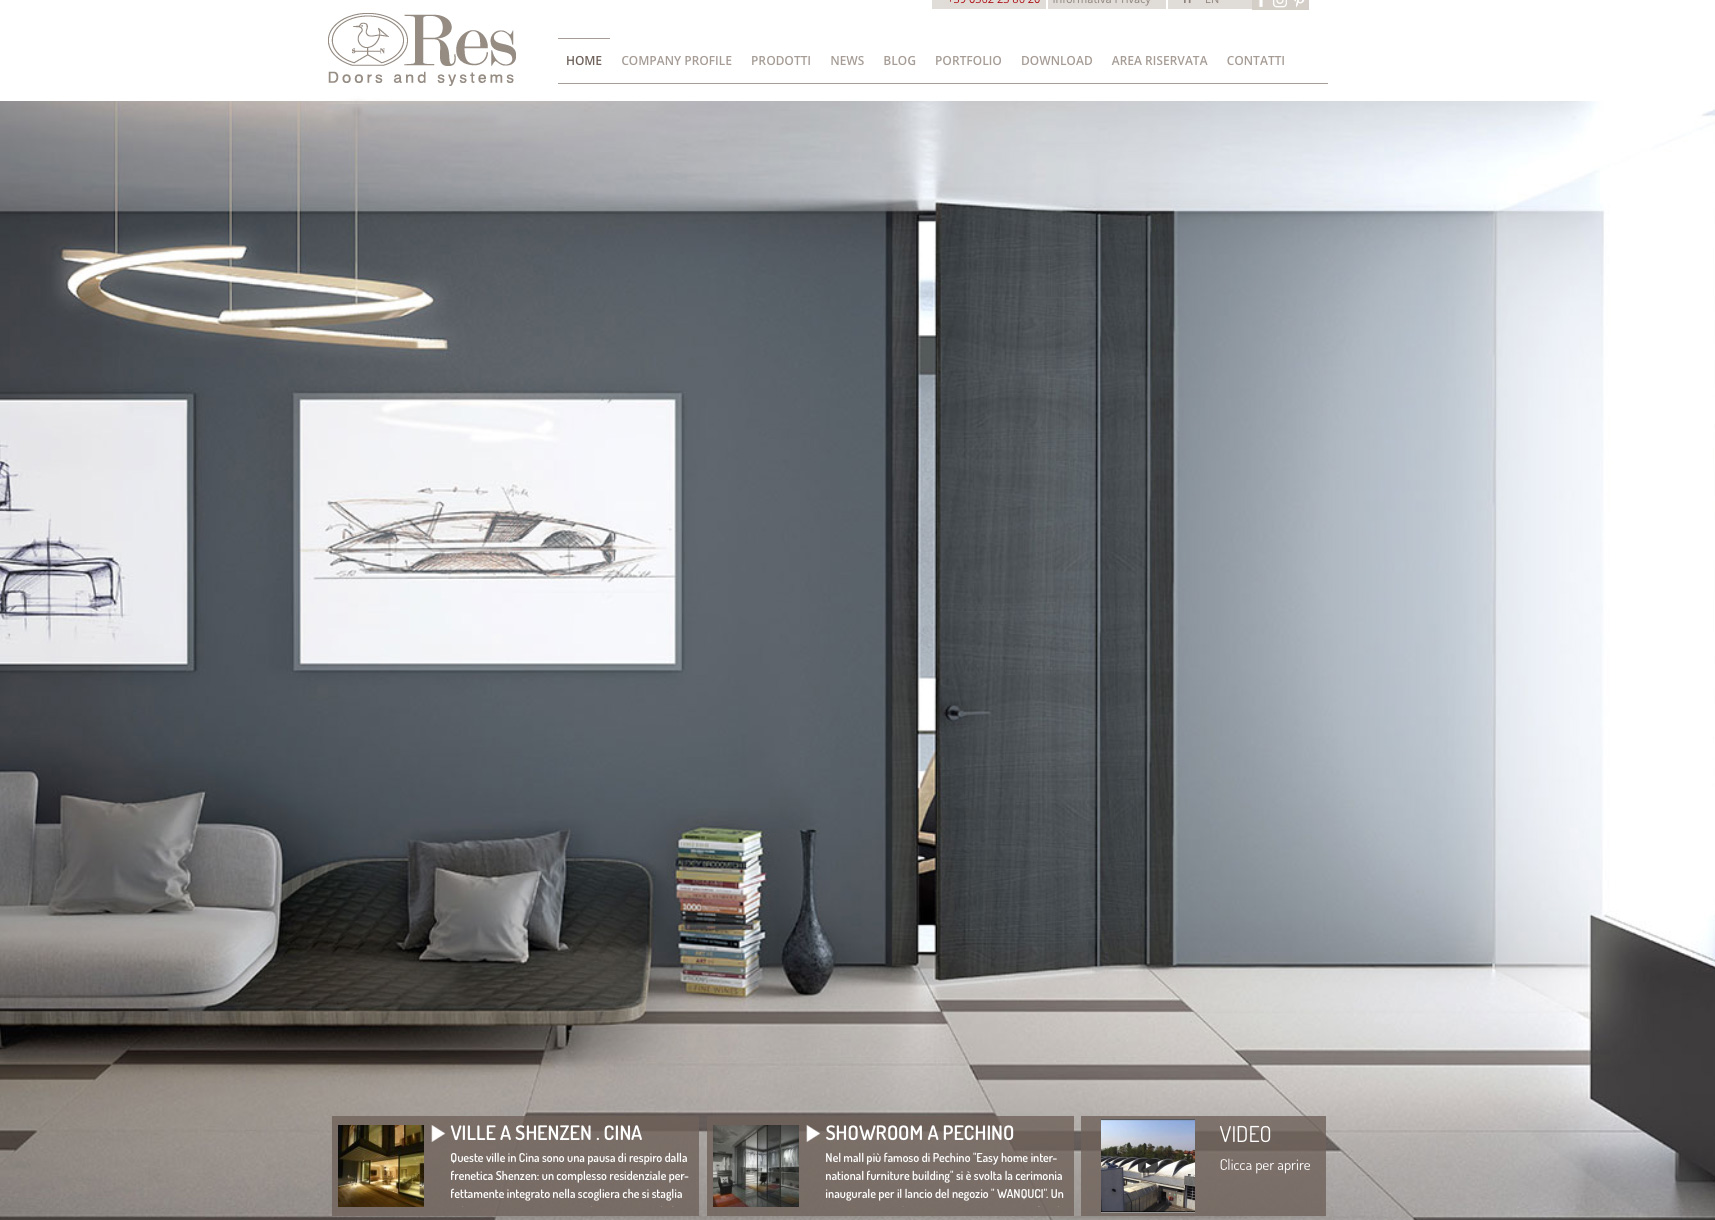 Date & website for Res door and systems by Massimo Cavana